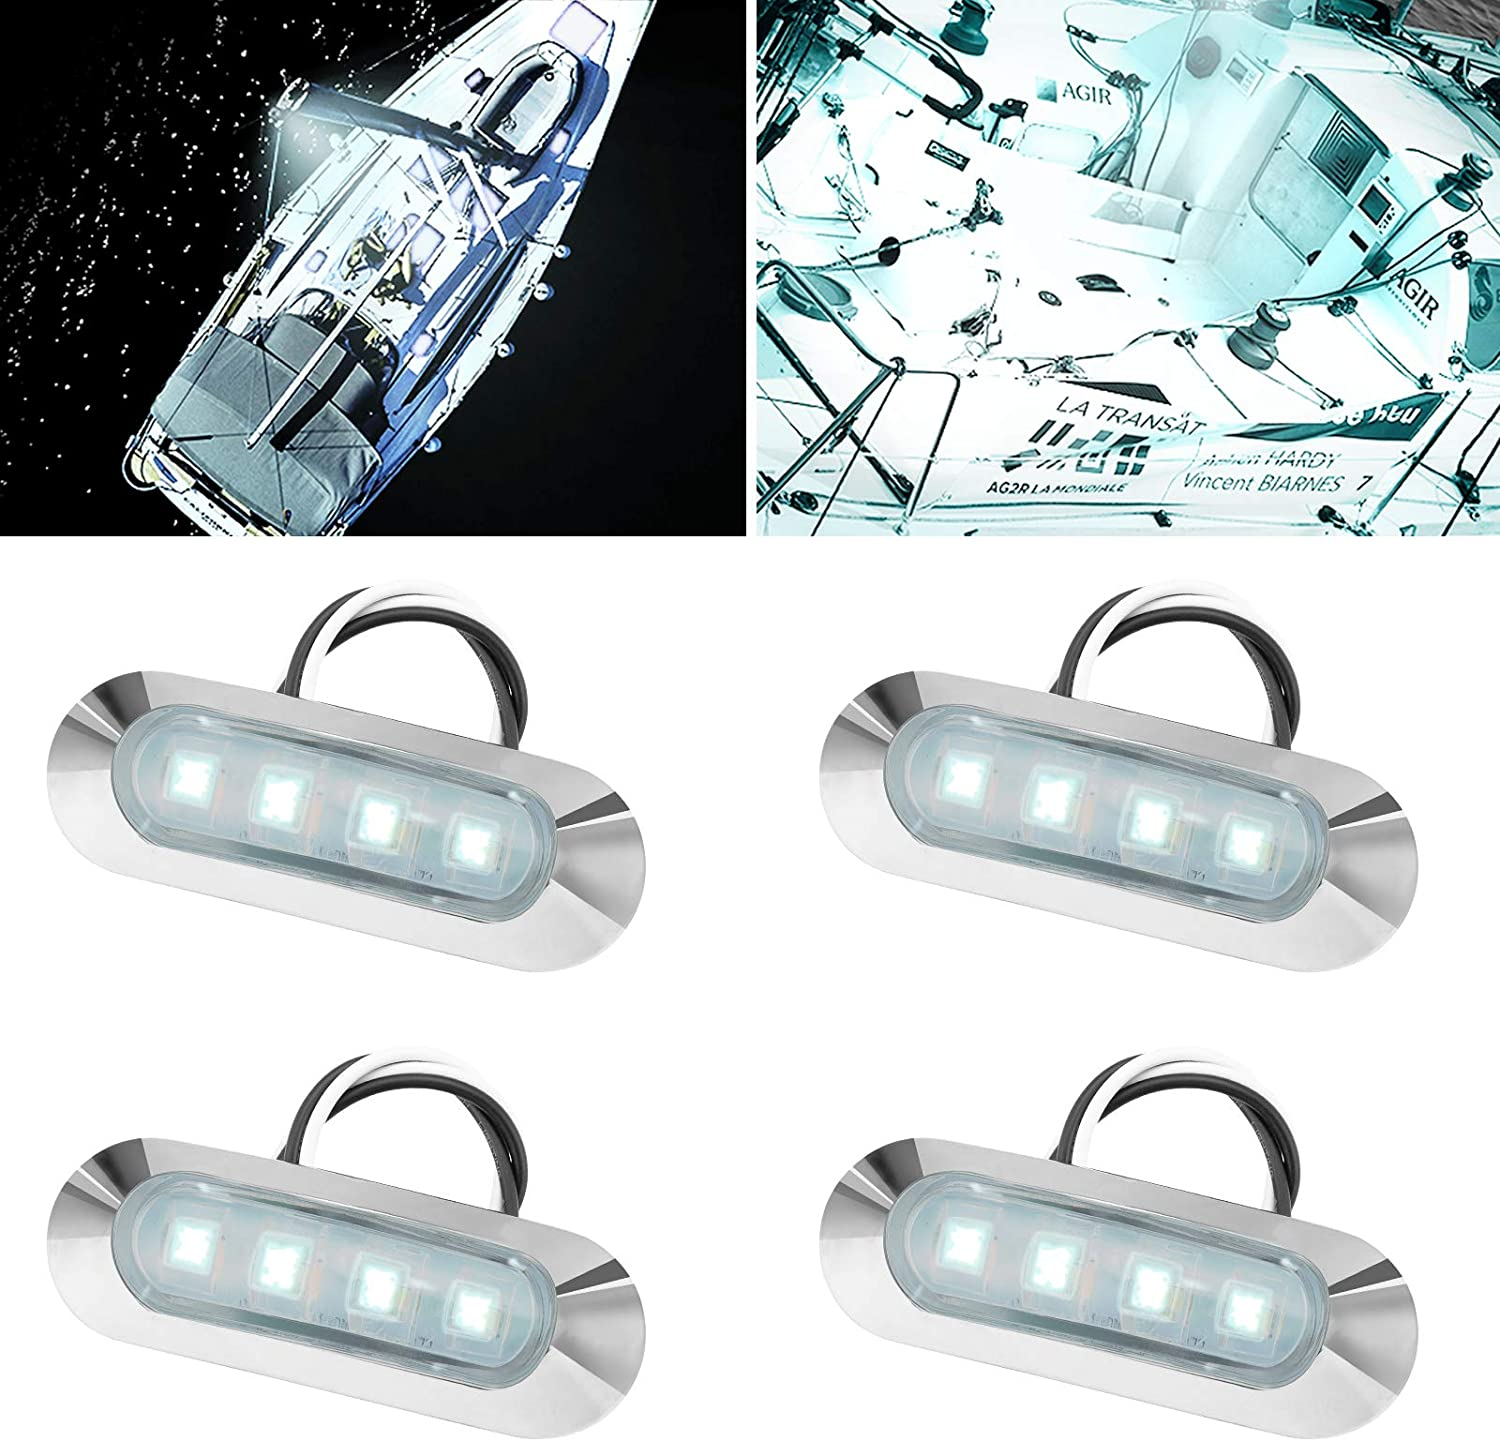 HONG Today's only 111 Marine Boat Lights Led Utility Max 48% OFF Interior De